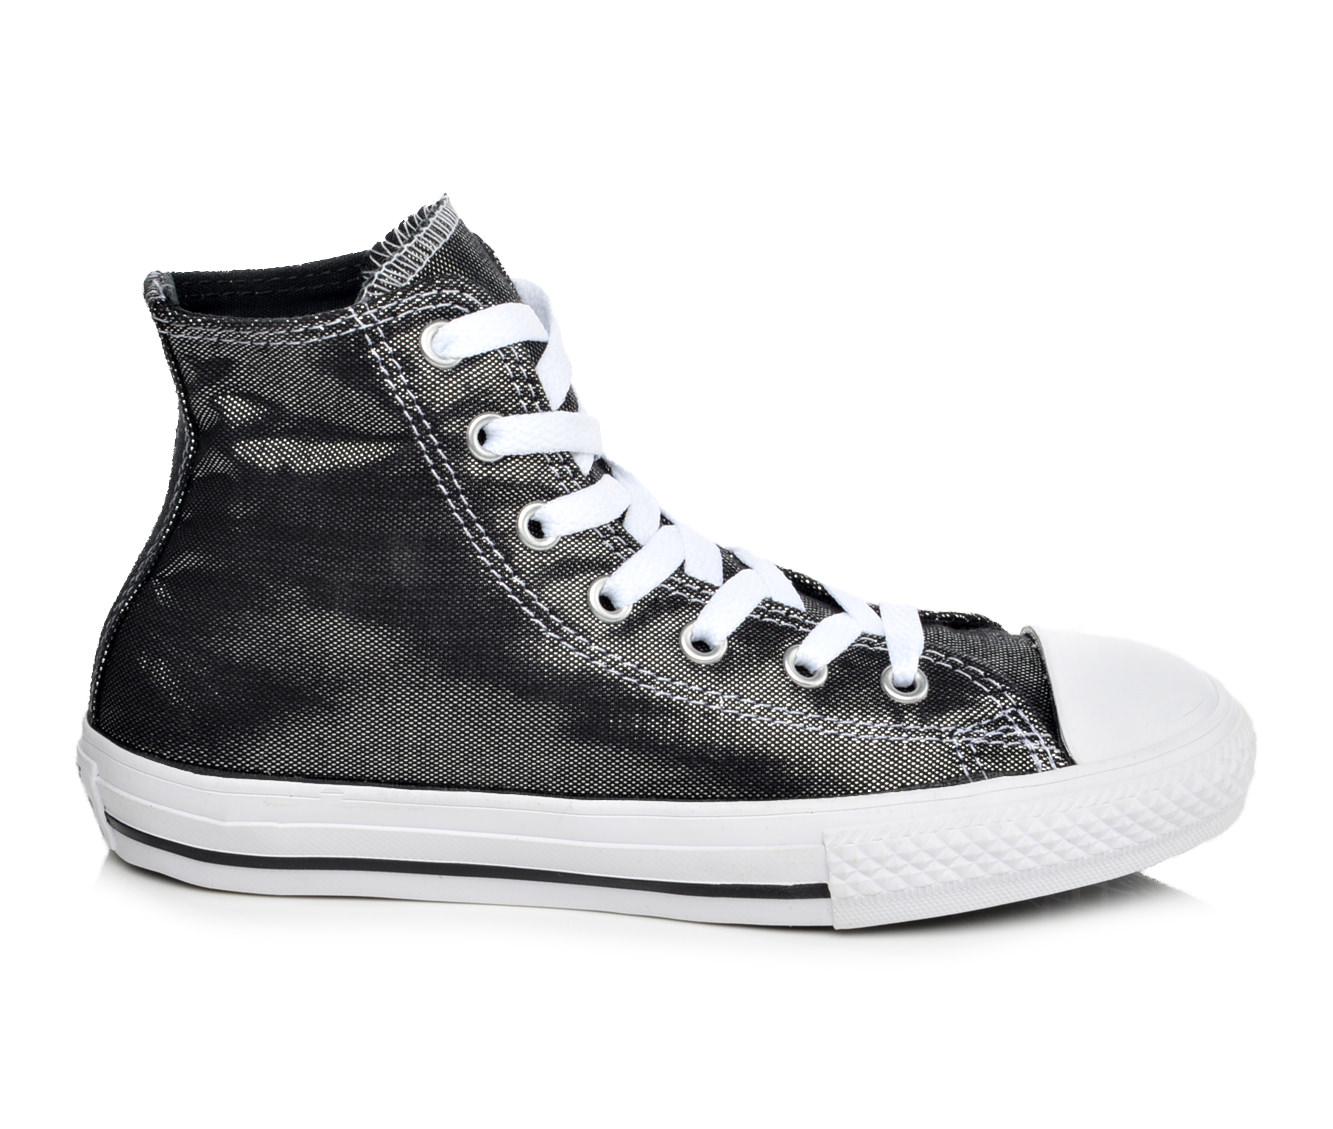 Girls' Converse Chuck Taylor Hi Shimmer Shine Sneakers (Black)